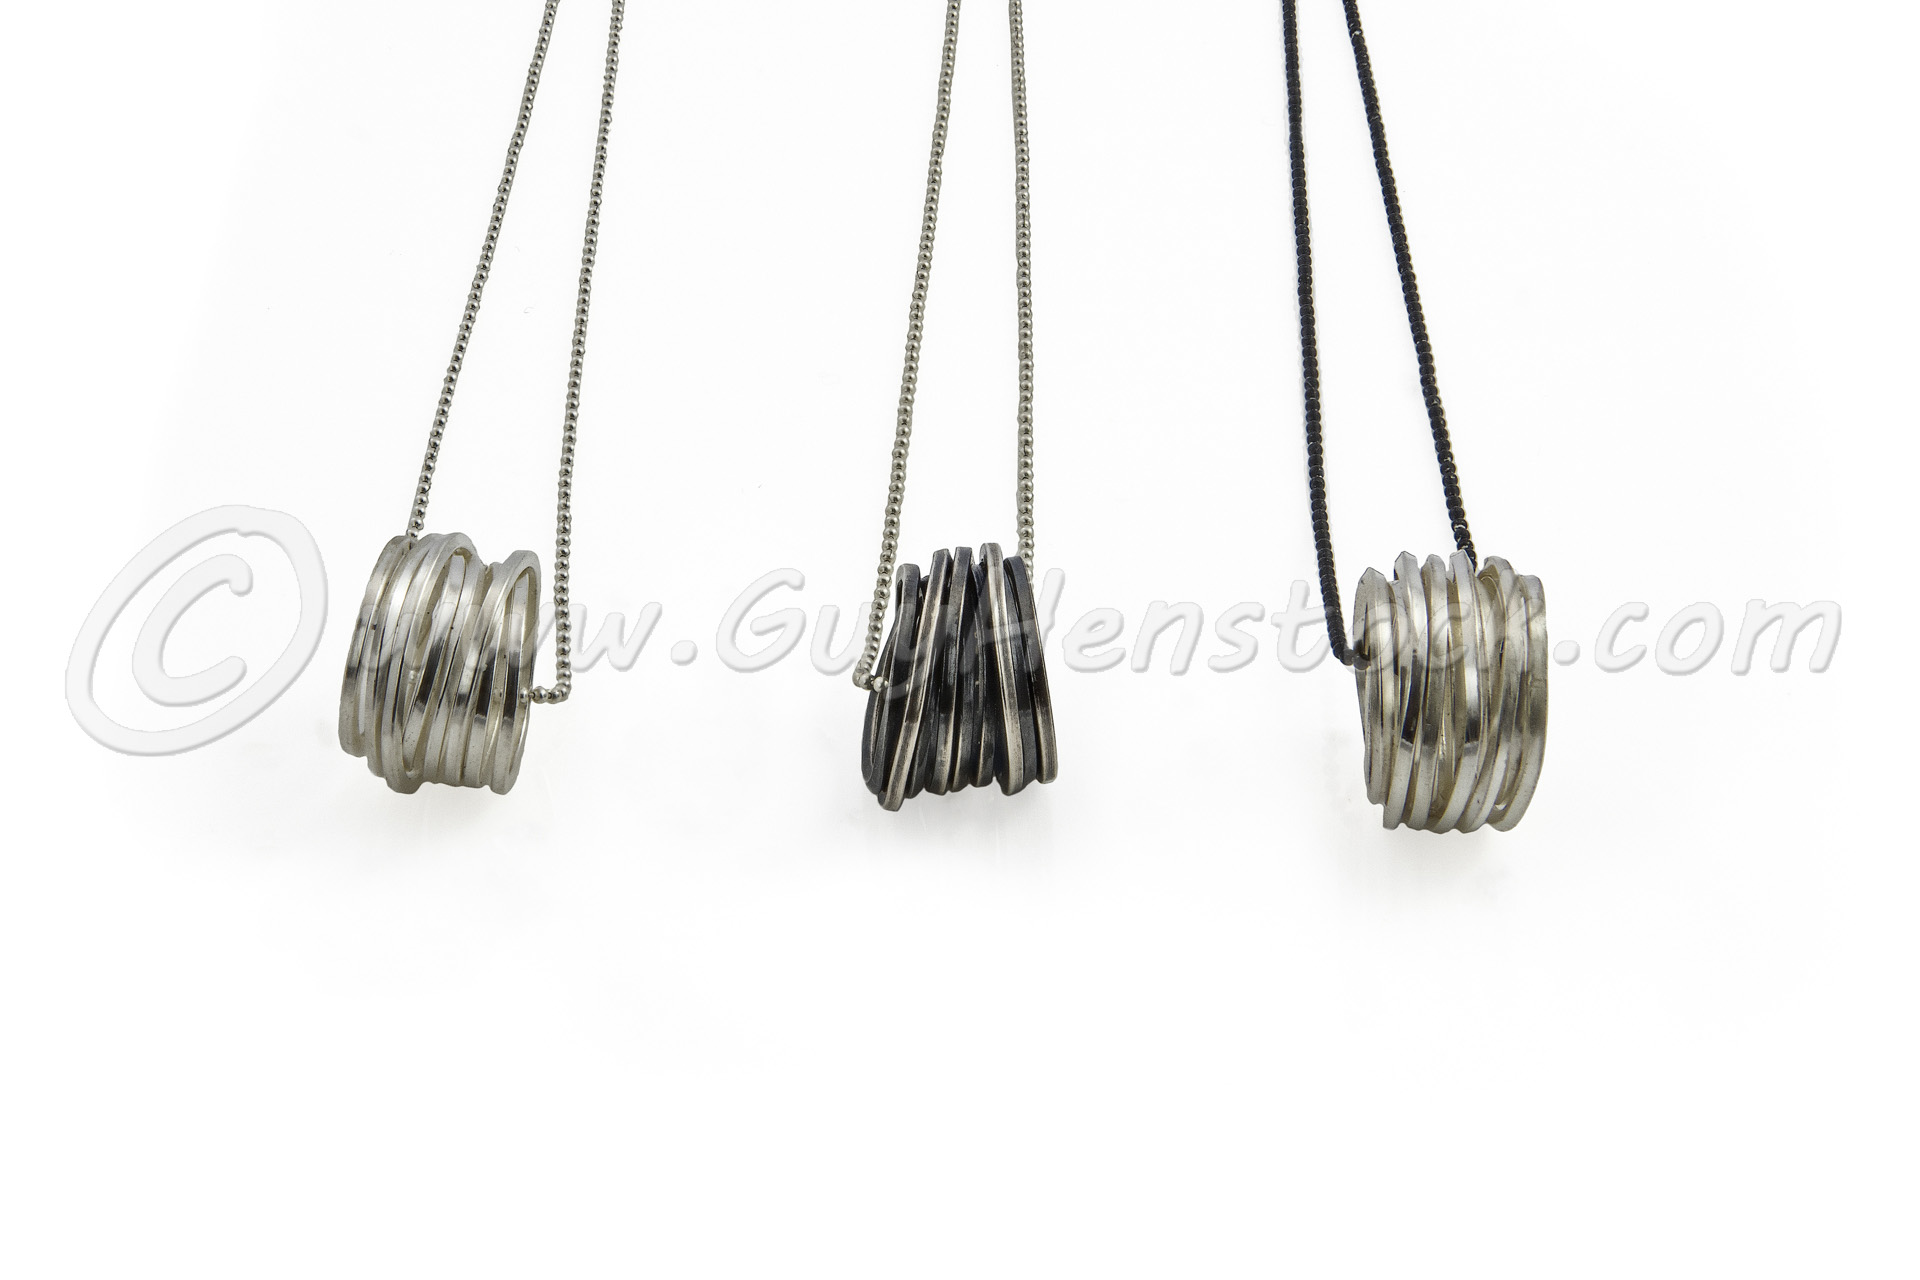 Three rings on chains Product photography